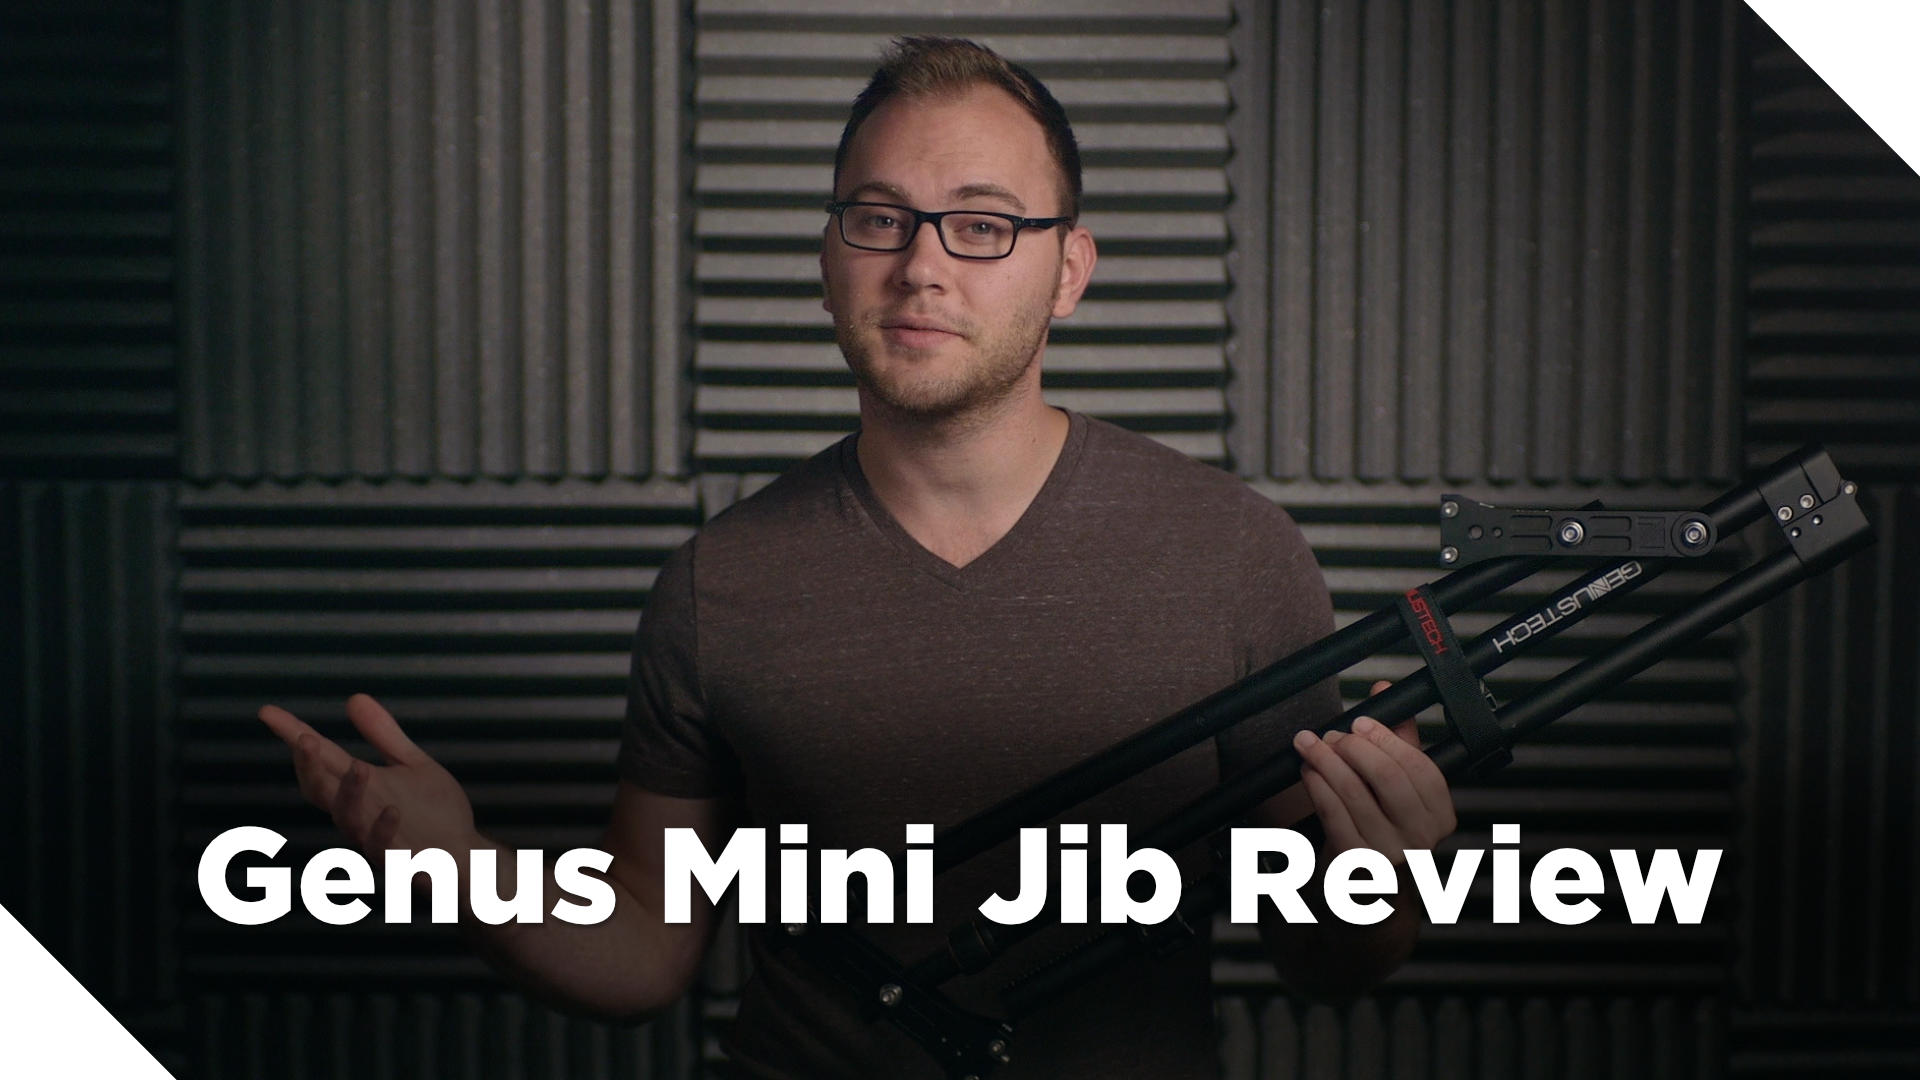 Genus Mini Jib Review